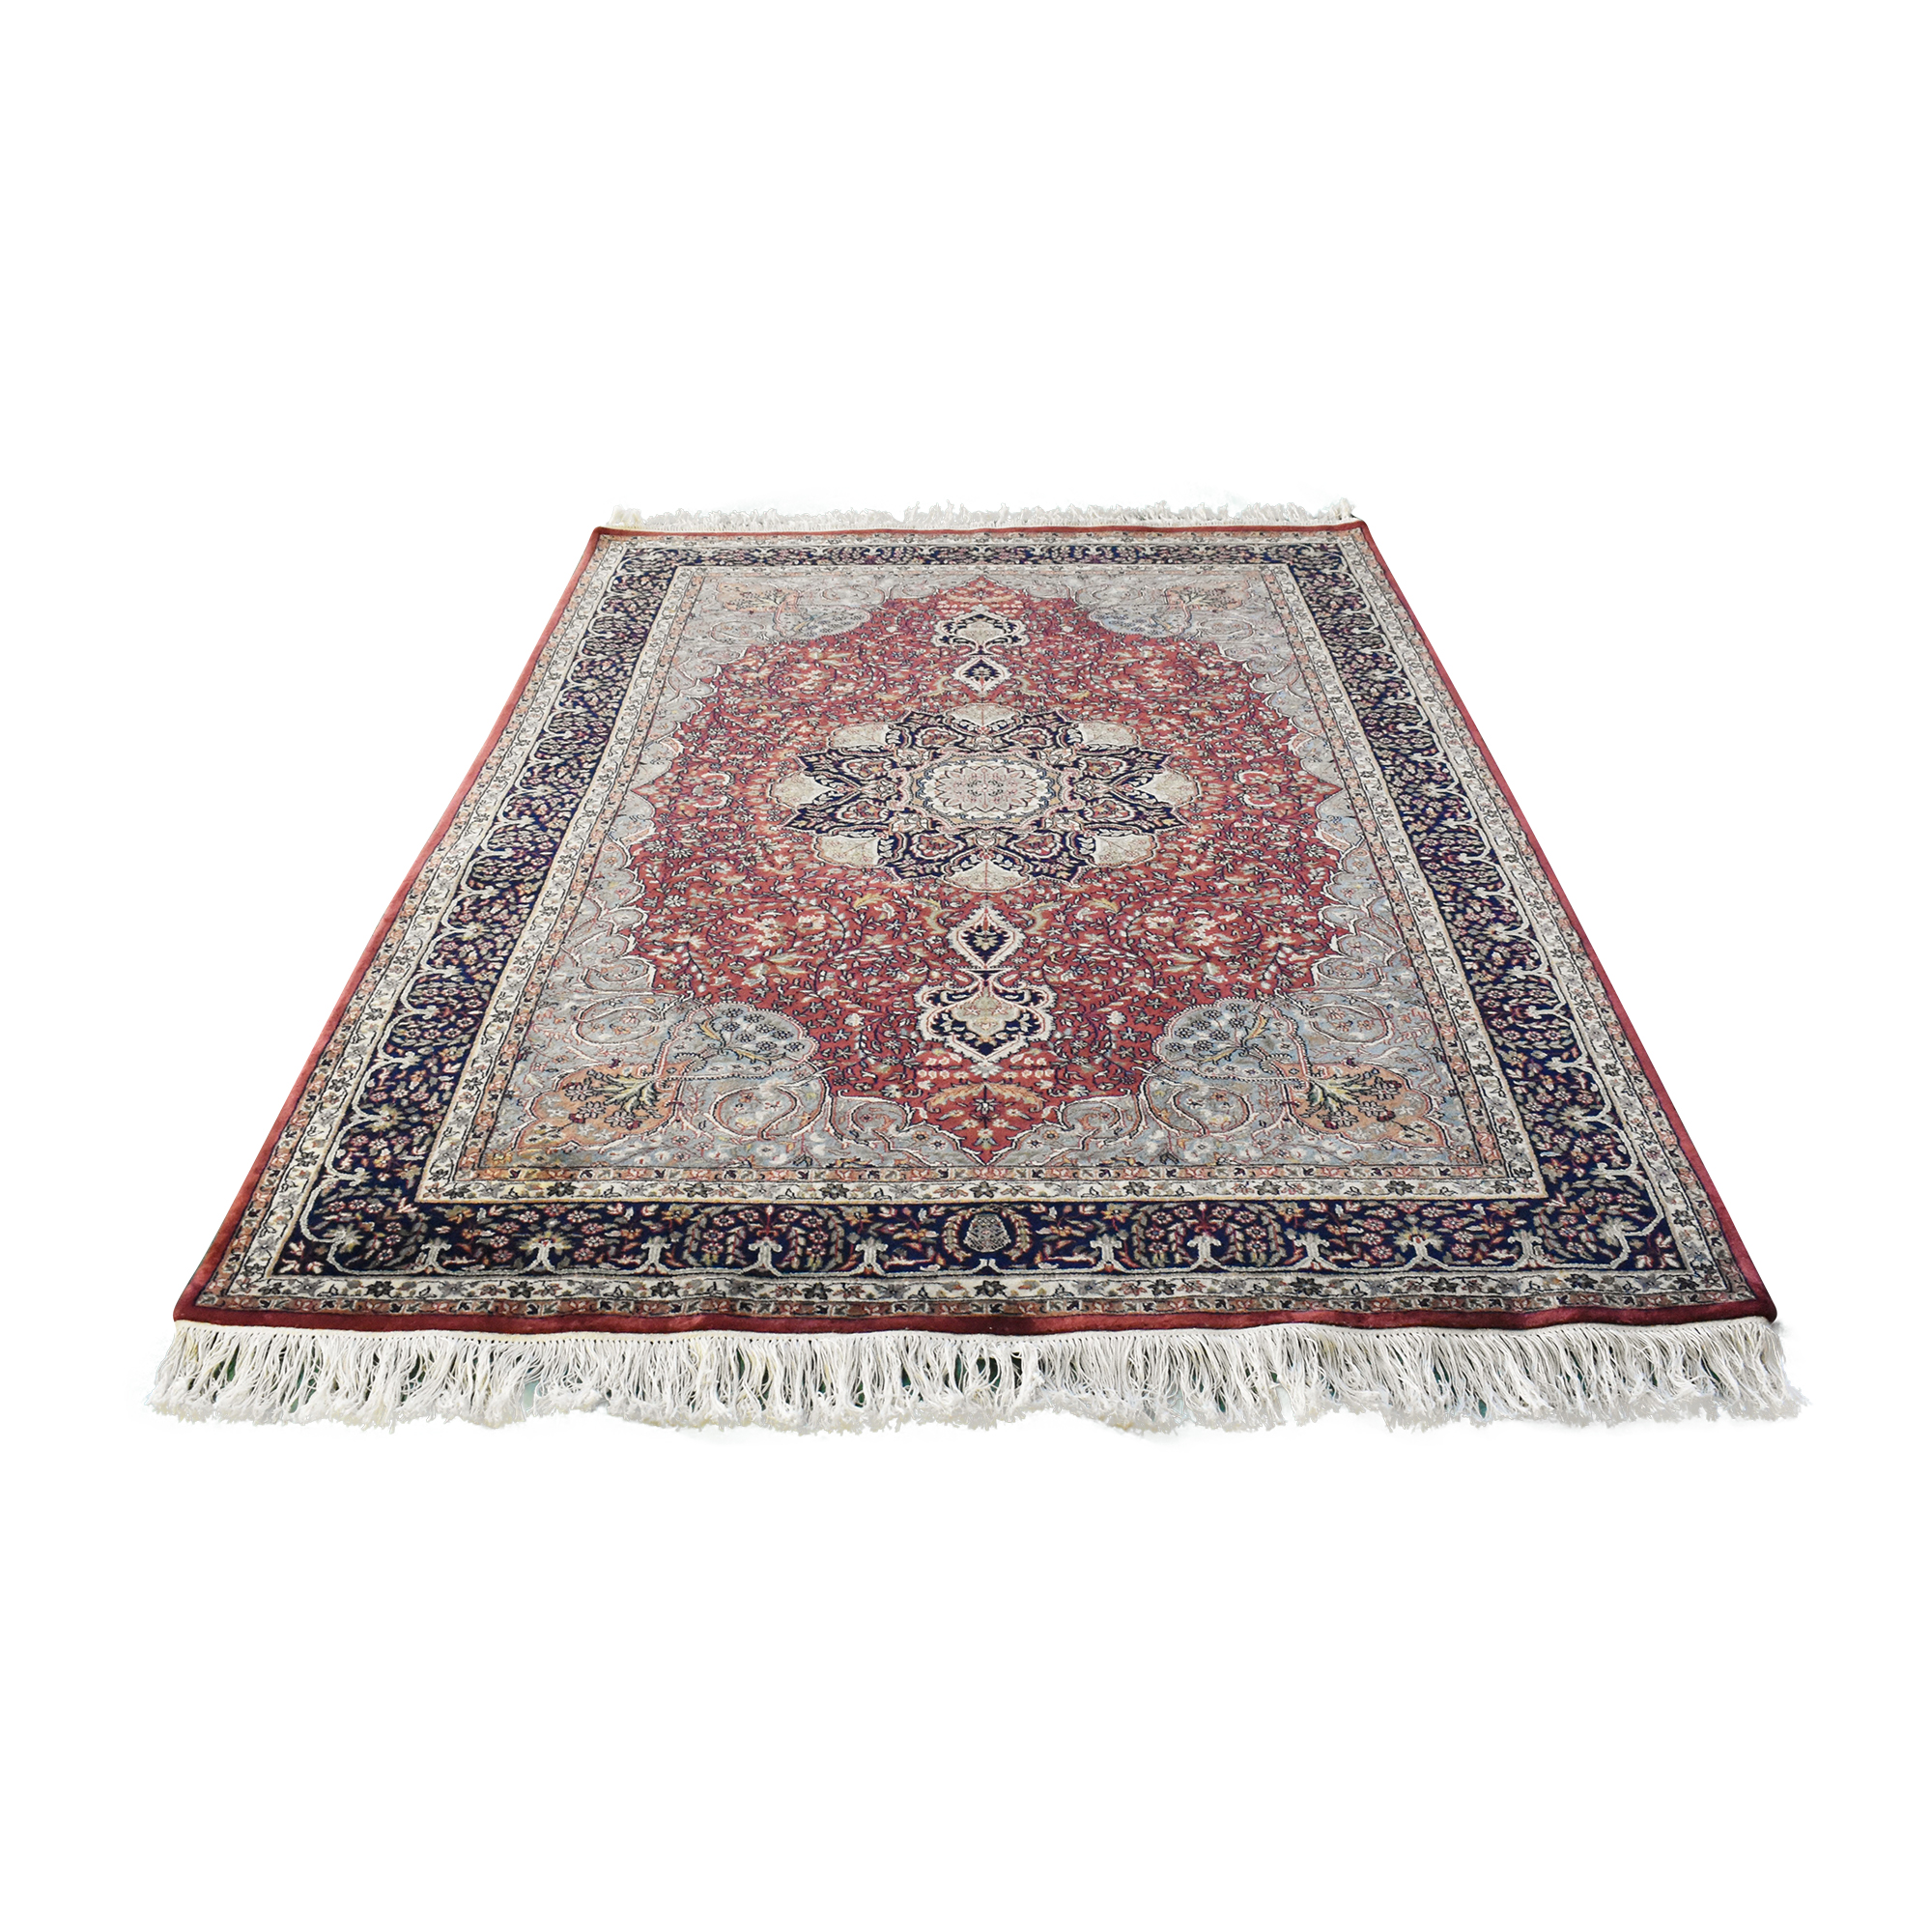 Macy's Macy's Patterned Area Rug ct